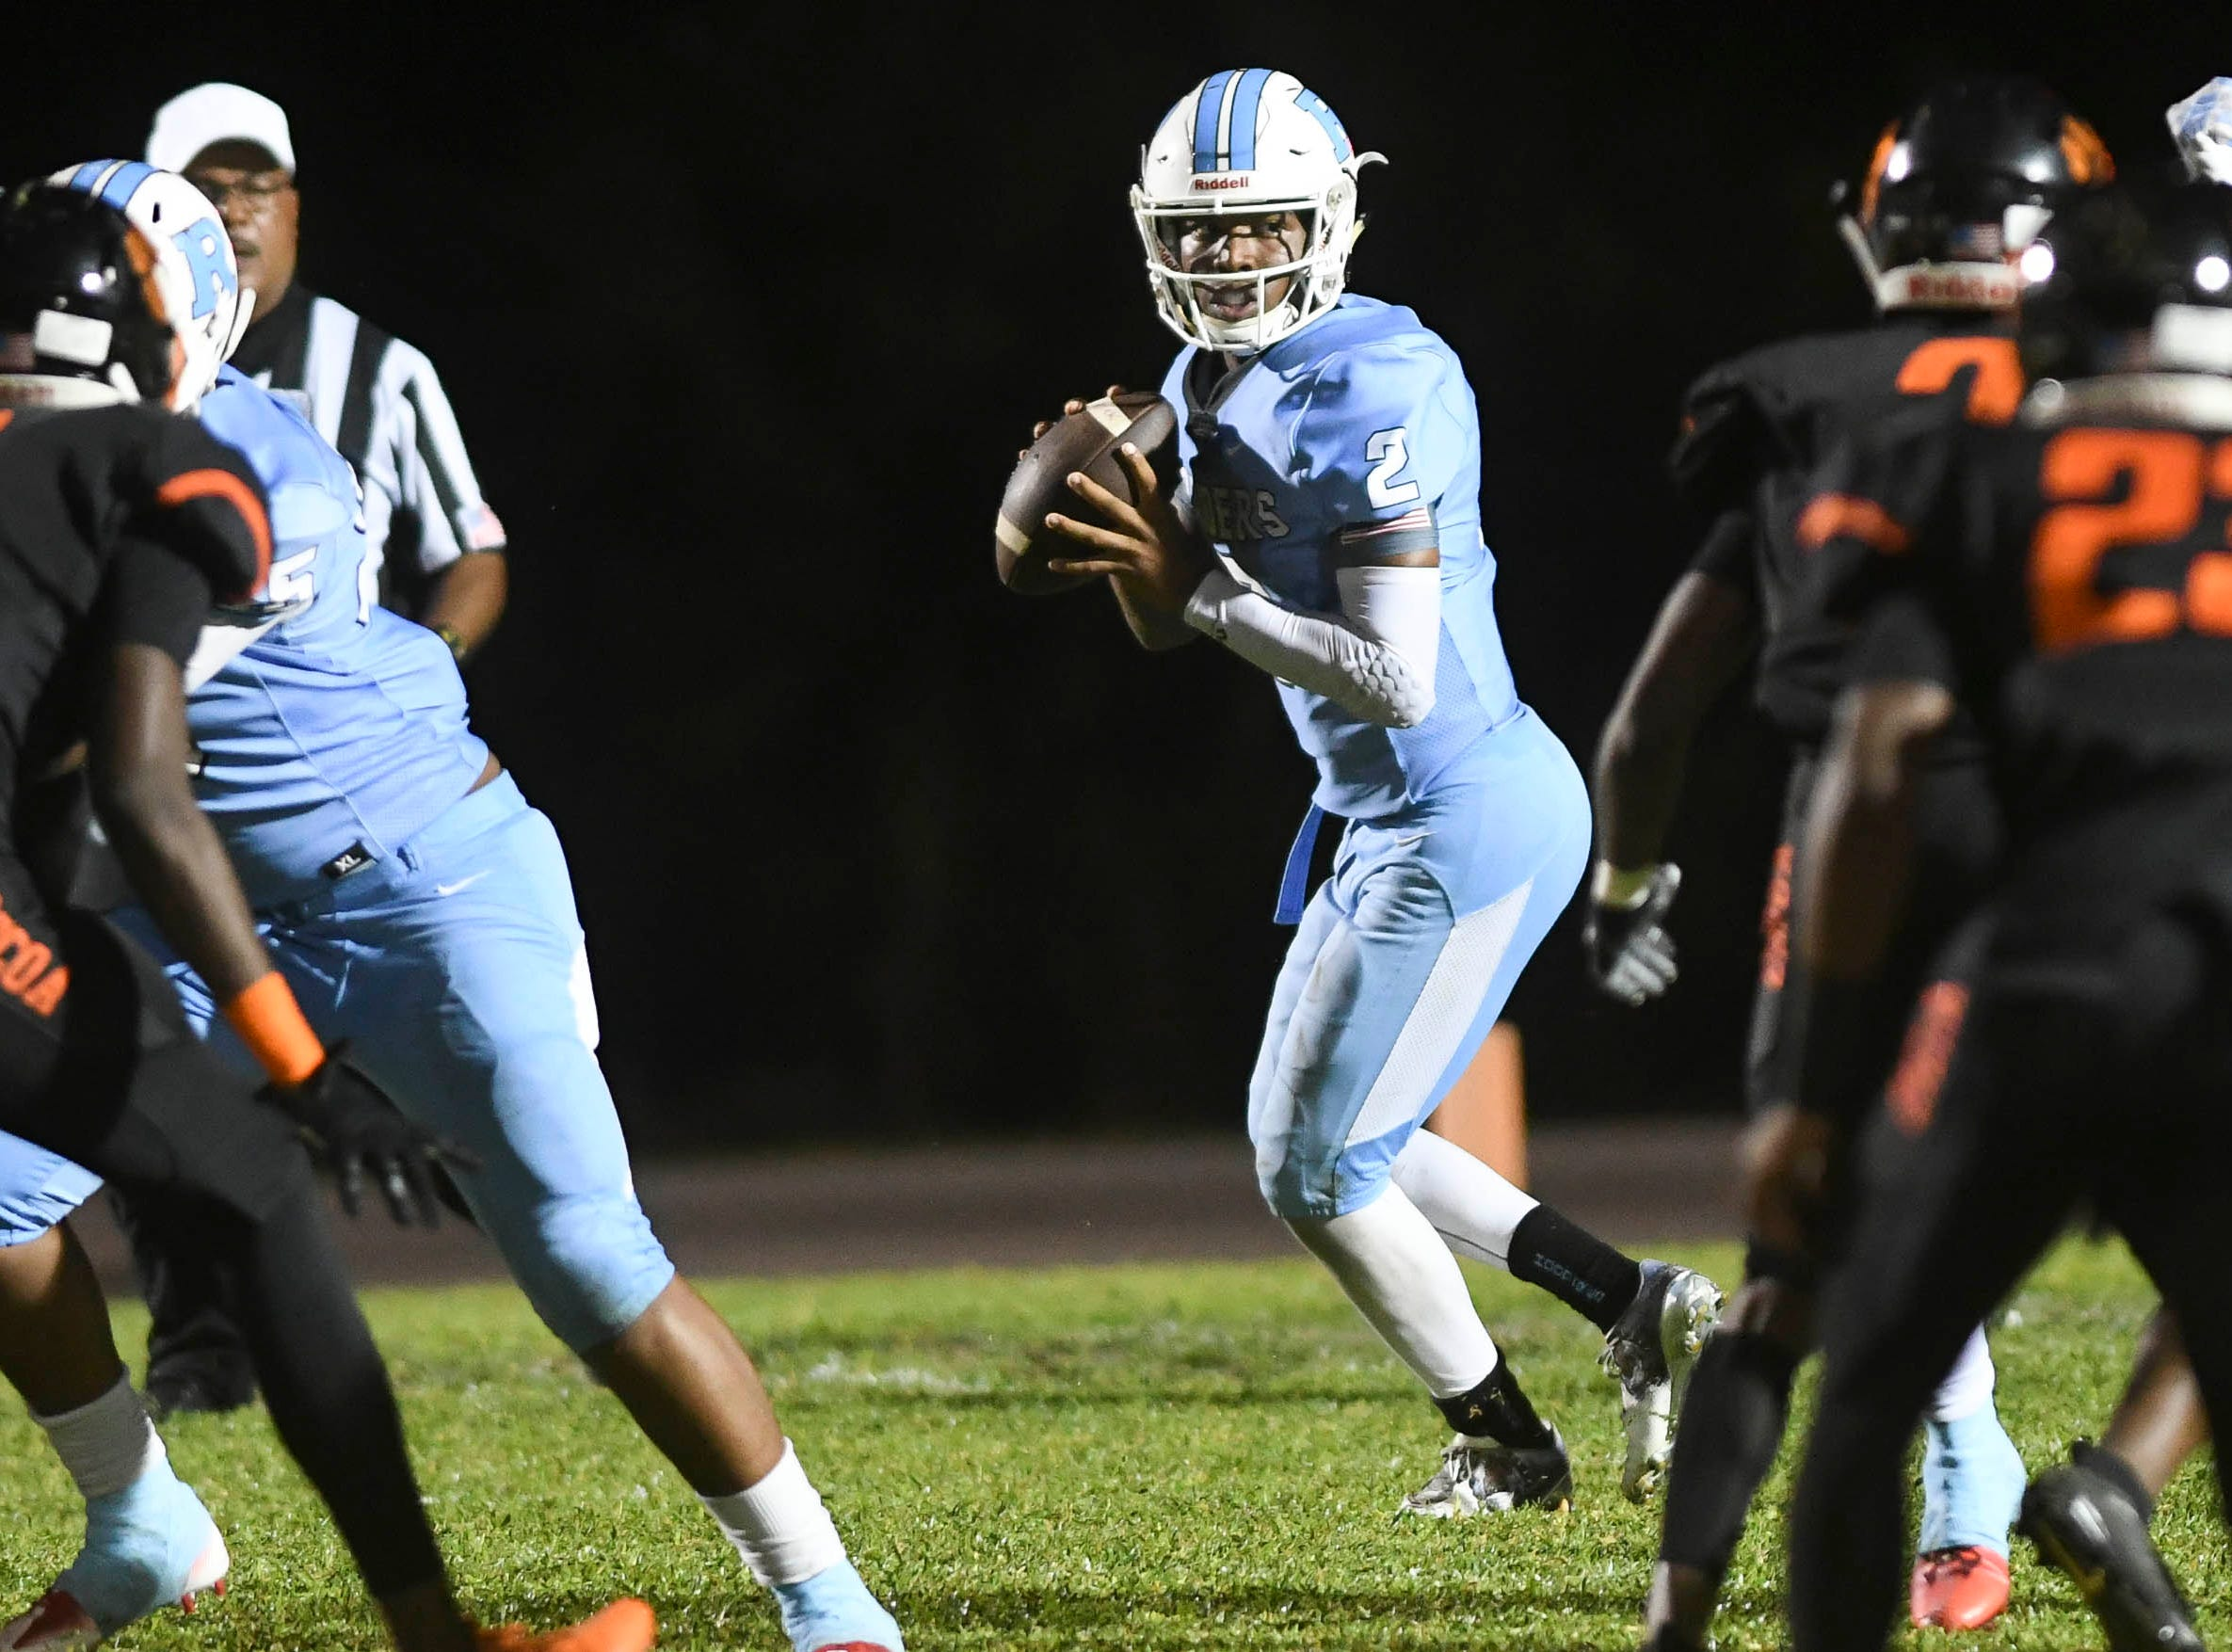 Rockledge QB Elias Allen drops back to pass during Friday's game.